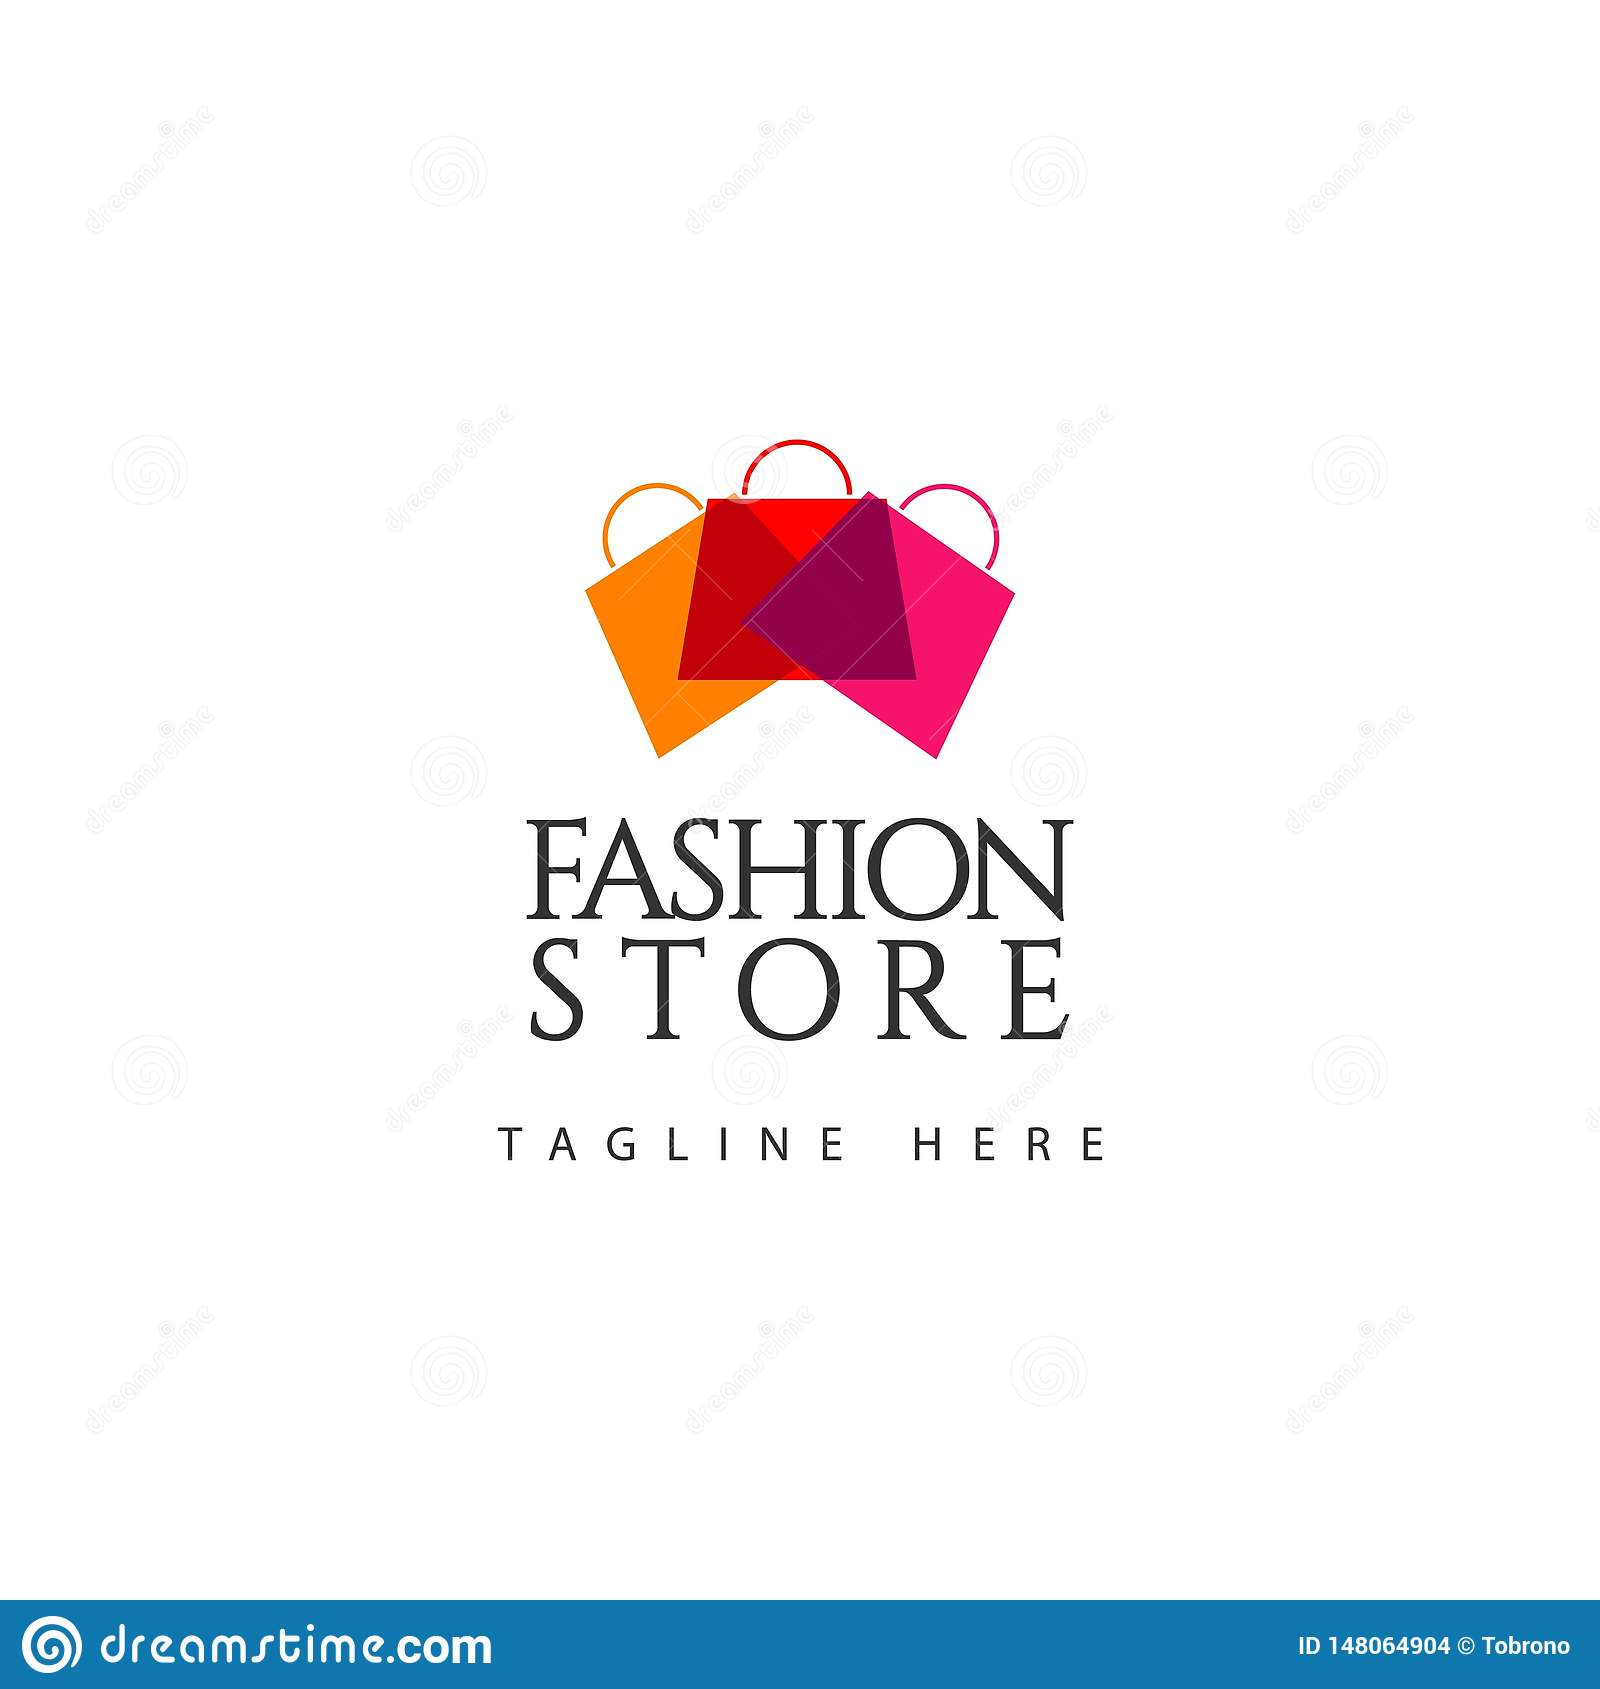 Fashion Store Logo Vector Template Design Illustration Stock Vector Illustration Of Line Abstract 148064904